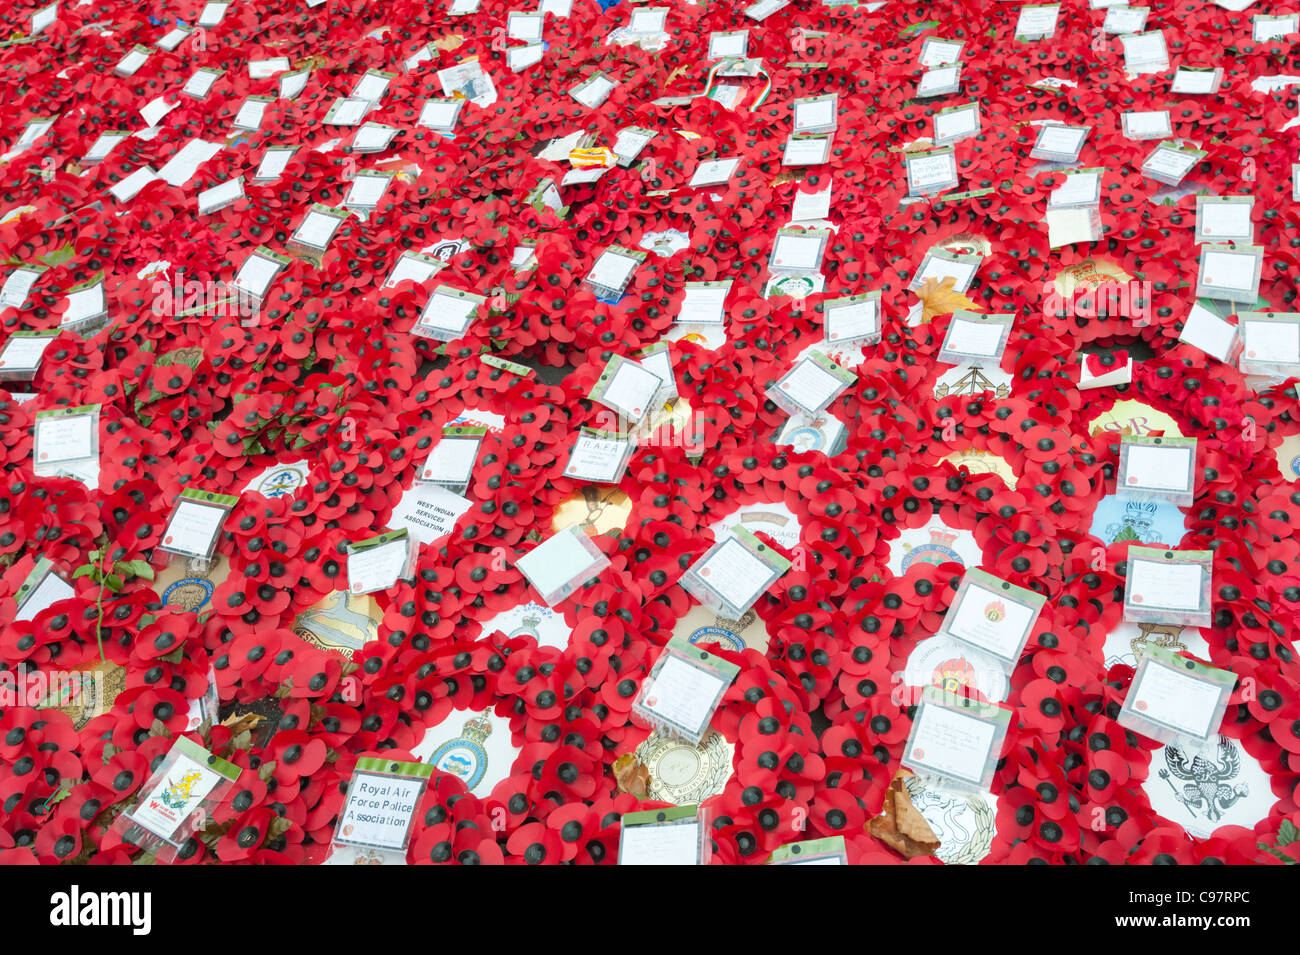 Wreathes of poppies placed next to the cenotaph in Whitehall, Central London, England, on Remembrance Sunday, 2011. - Stock Image